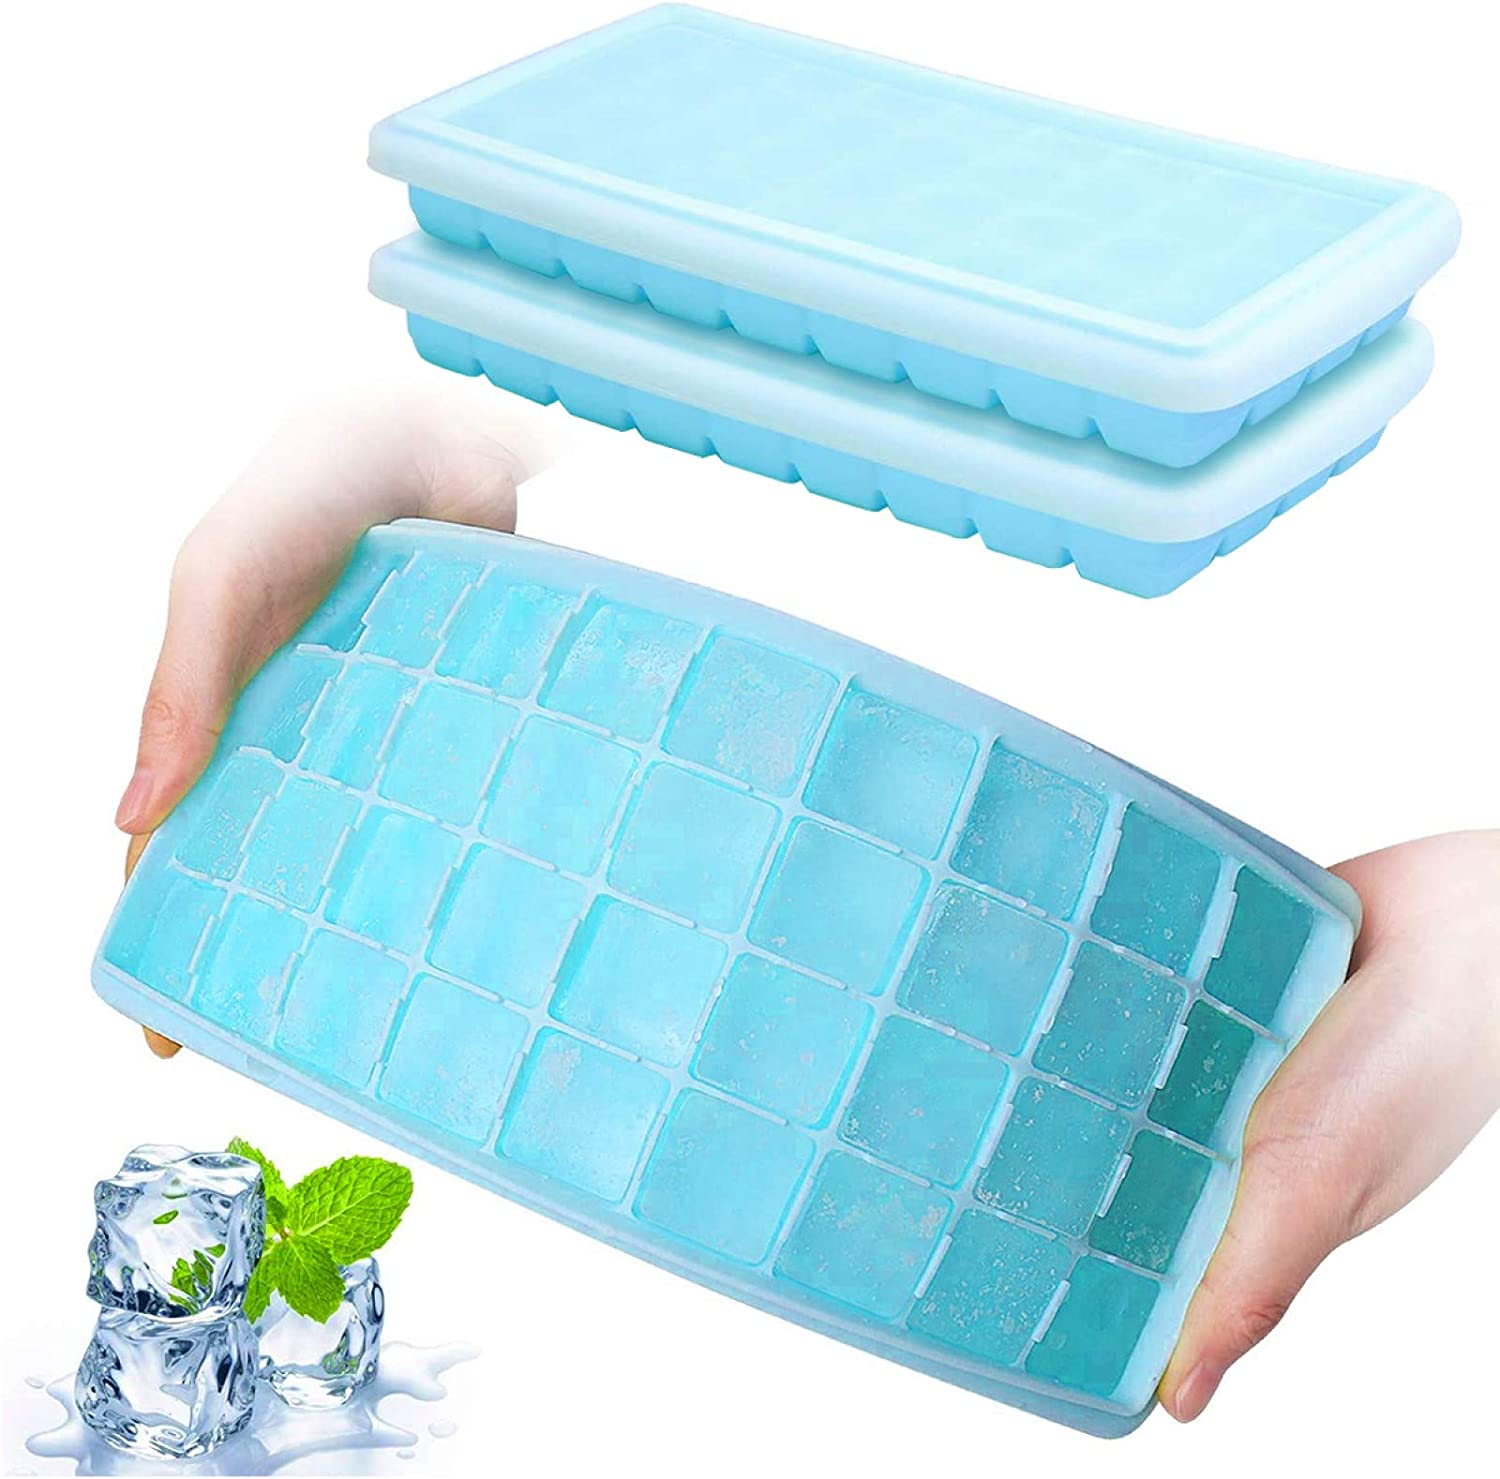 UPMCT Ice Cube Trays, 2 Pack Square Silicone Ice Cube Tray with Lids Easy Release No smell pollution BPA Free, for Whiskey, Cocktail Stock Baby Food, Freeze Cream